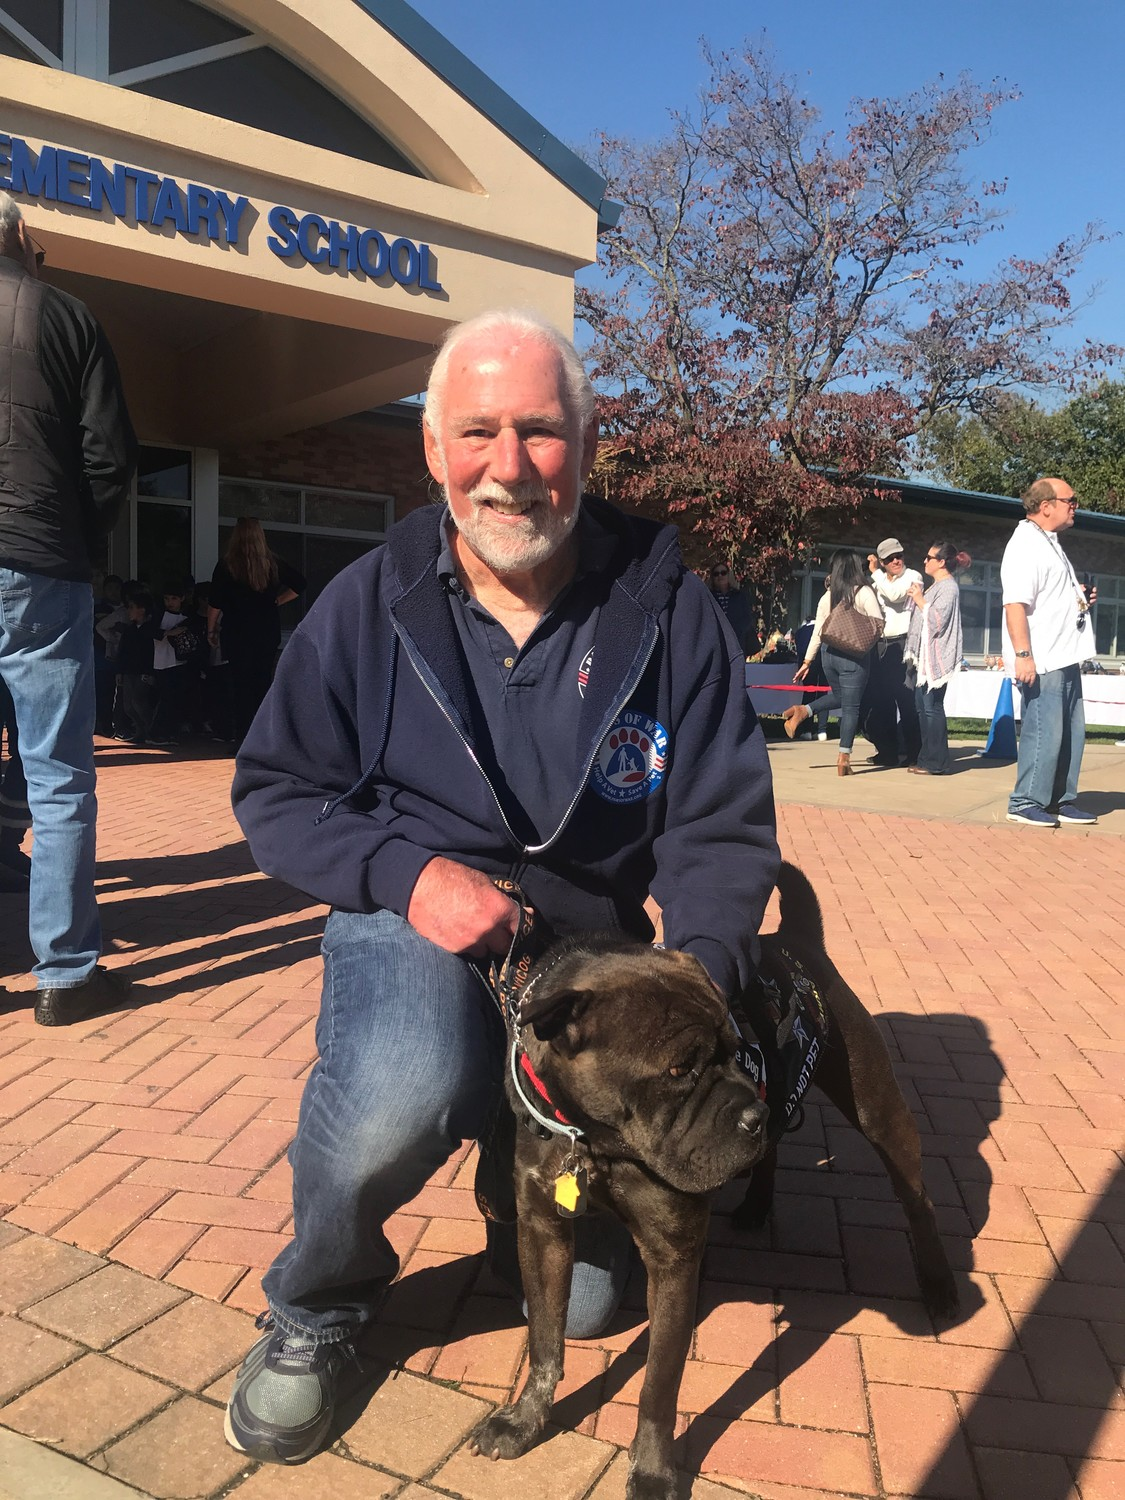 Vietnam veteran, Lionel Bauman with Mr. Wrinkles at the Ogden Elementary School Make a Difference Day on Oct. 27.